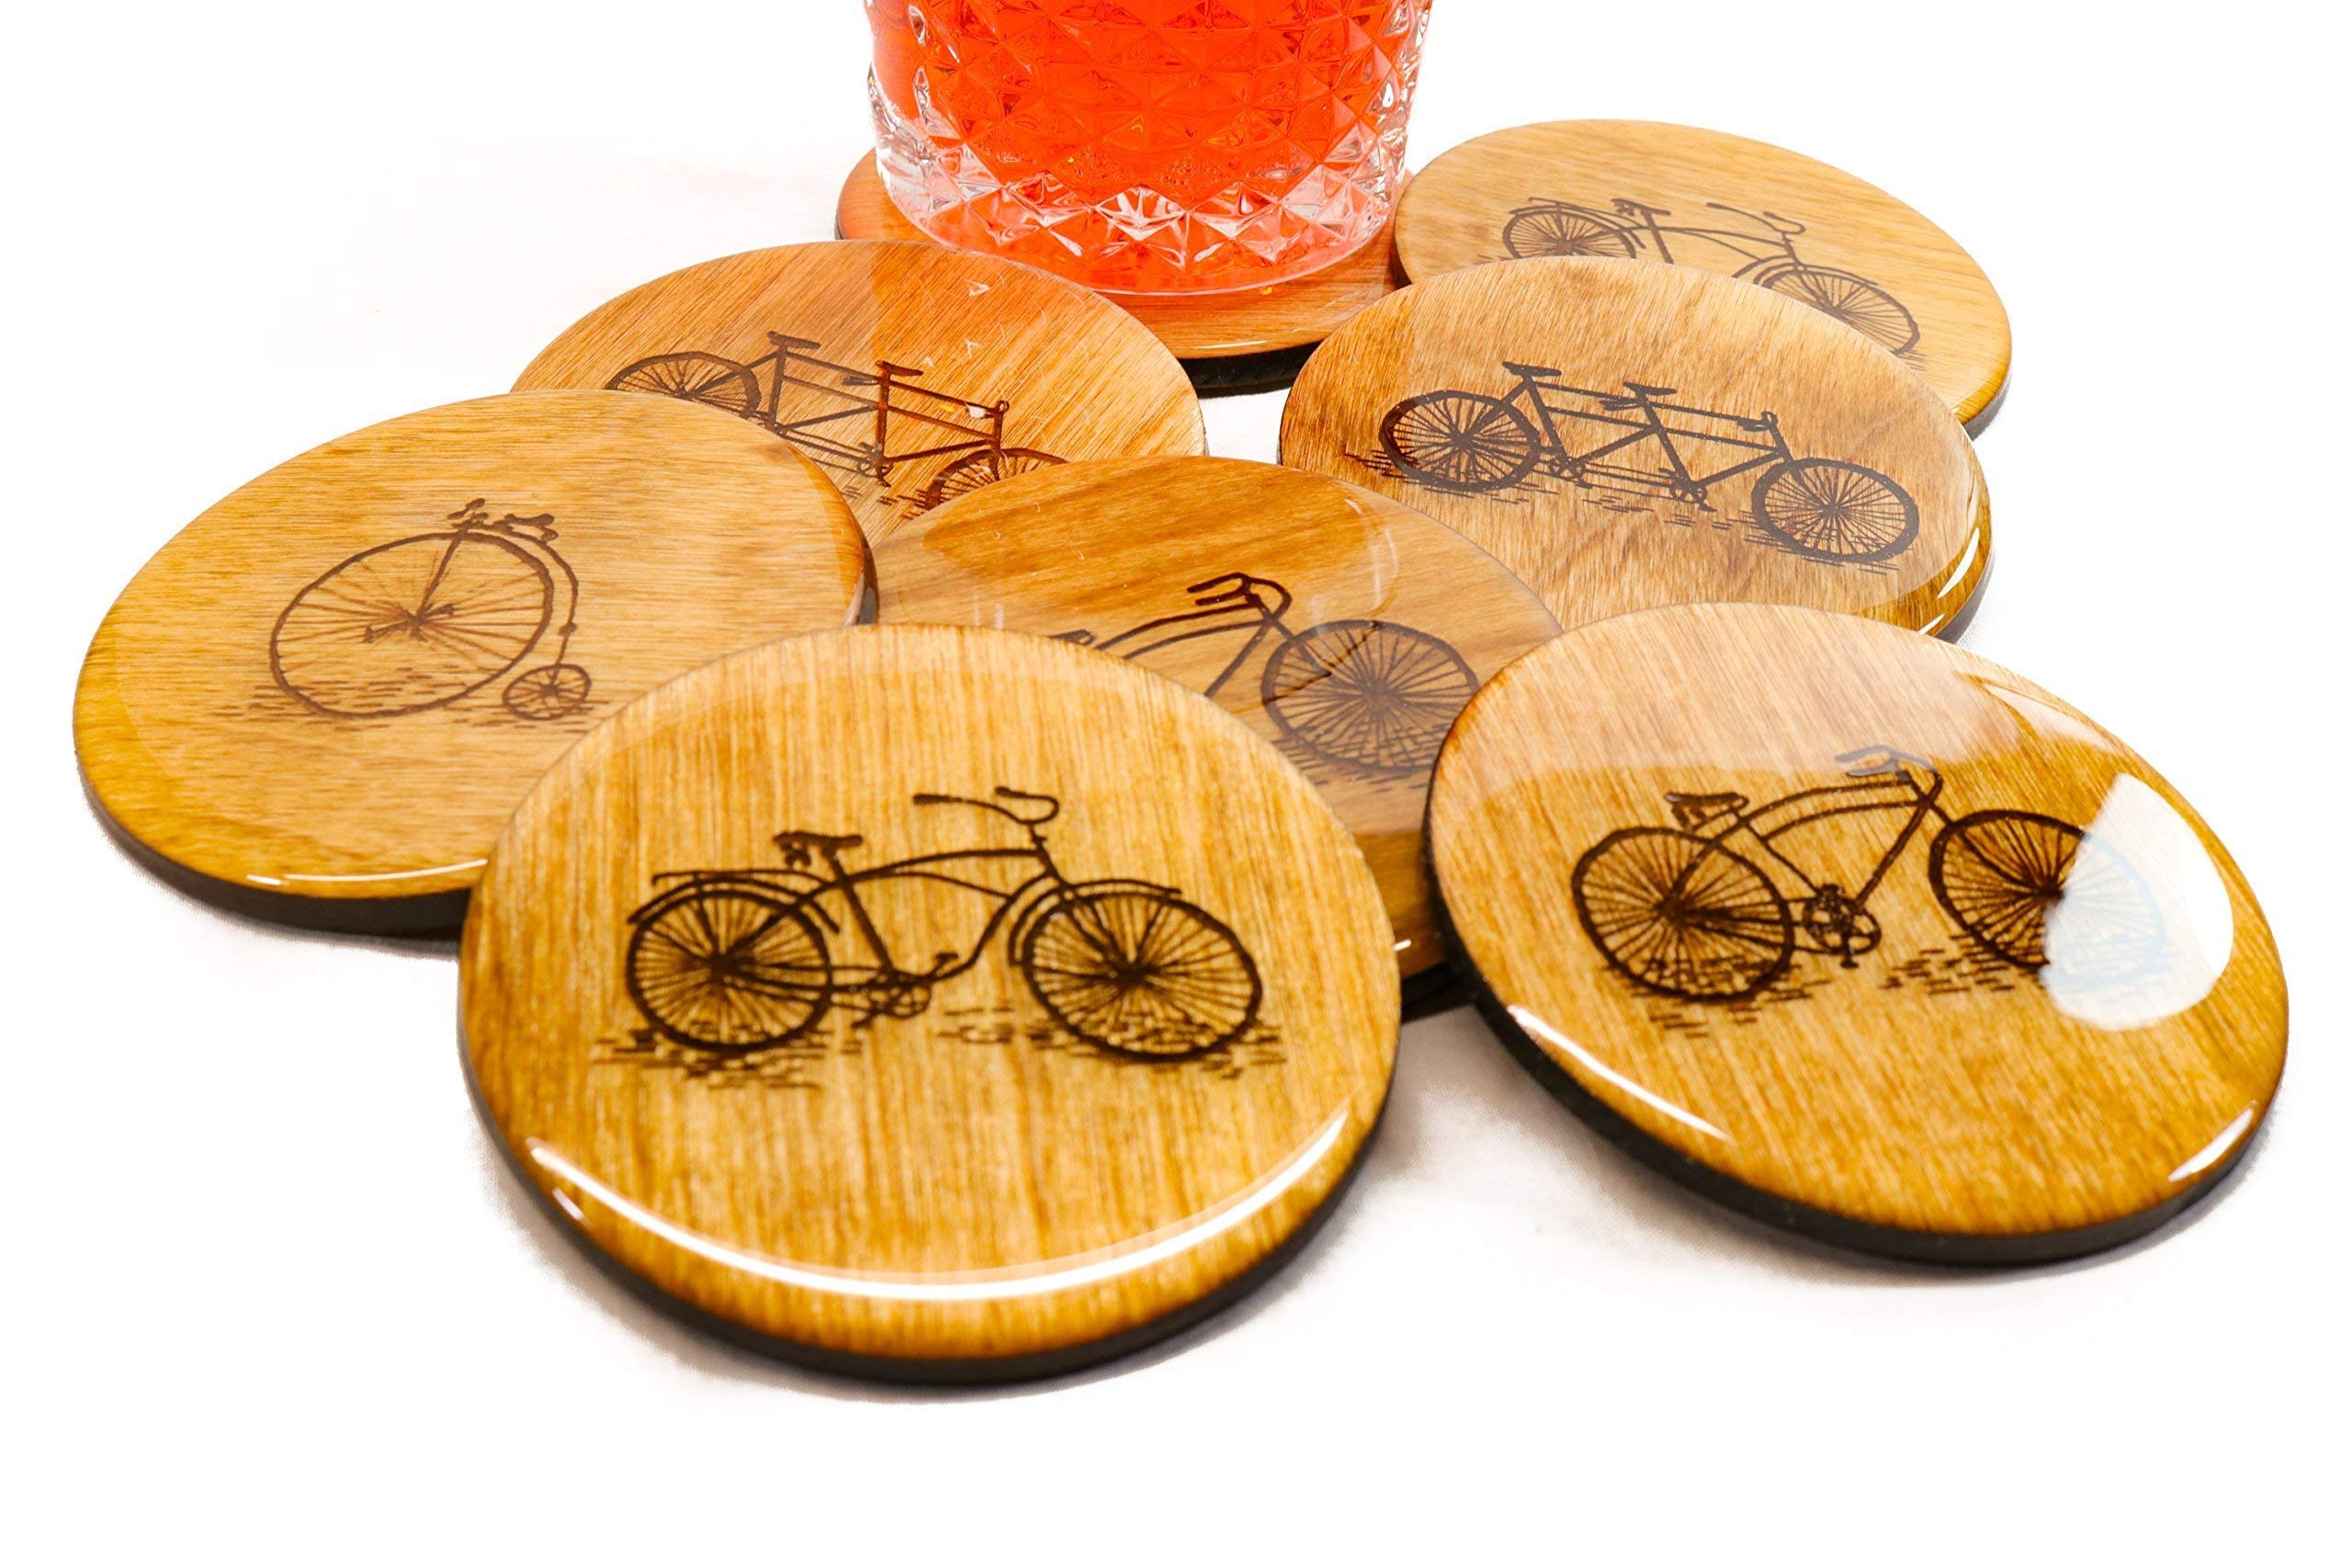 Set of 4 PREMIUM Bicycle Coasters - 3.5'' Wood Coasters High Gloss Finish Bike